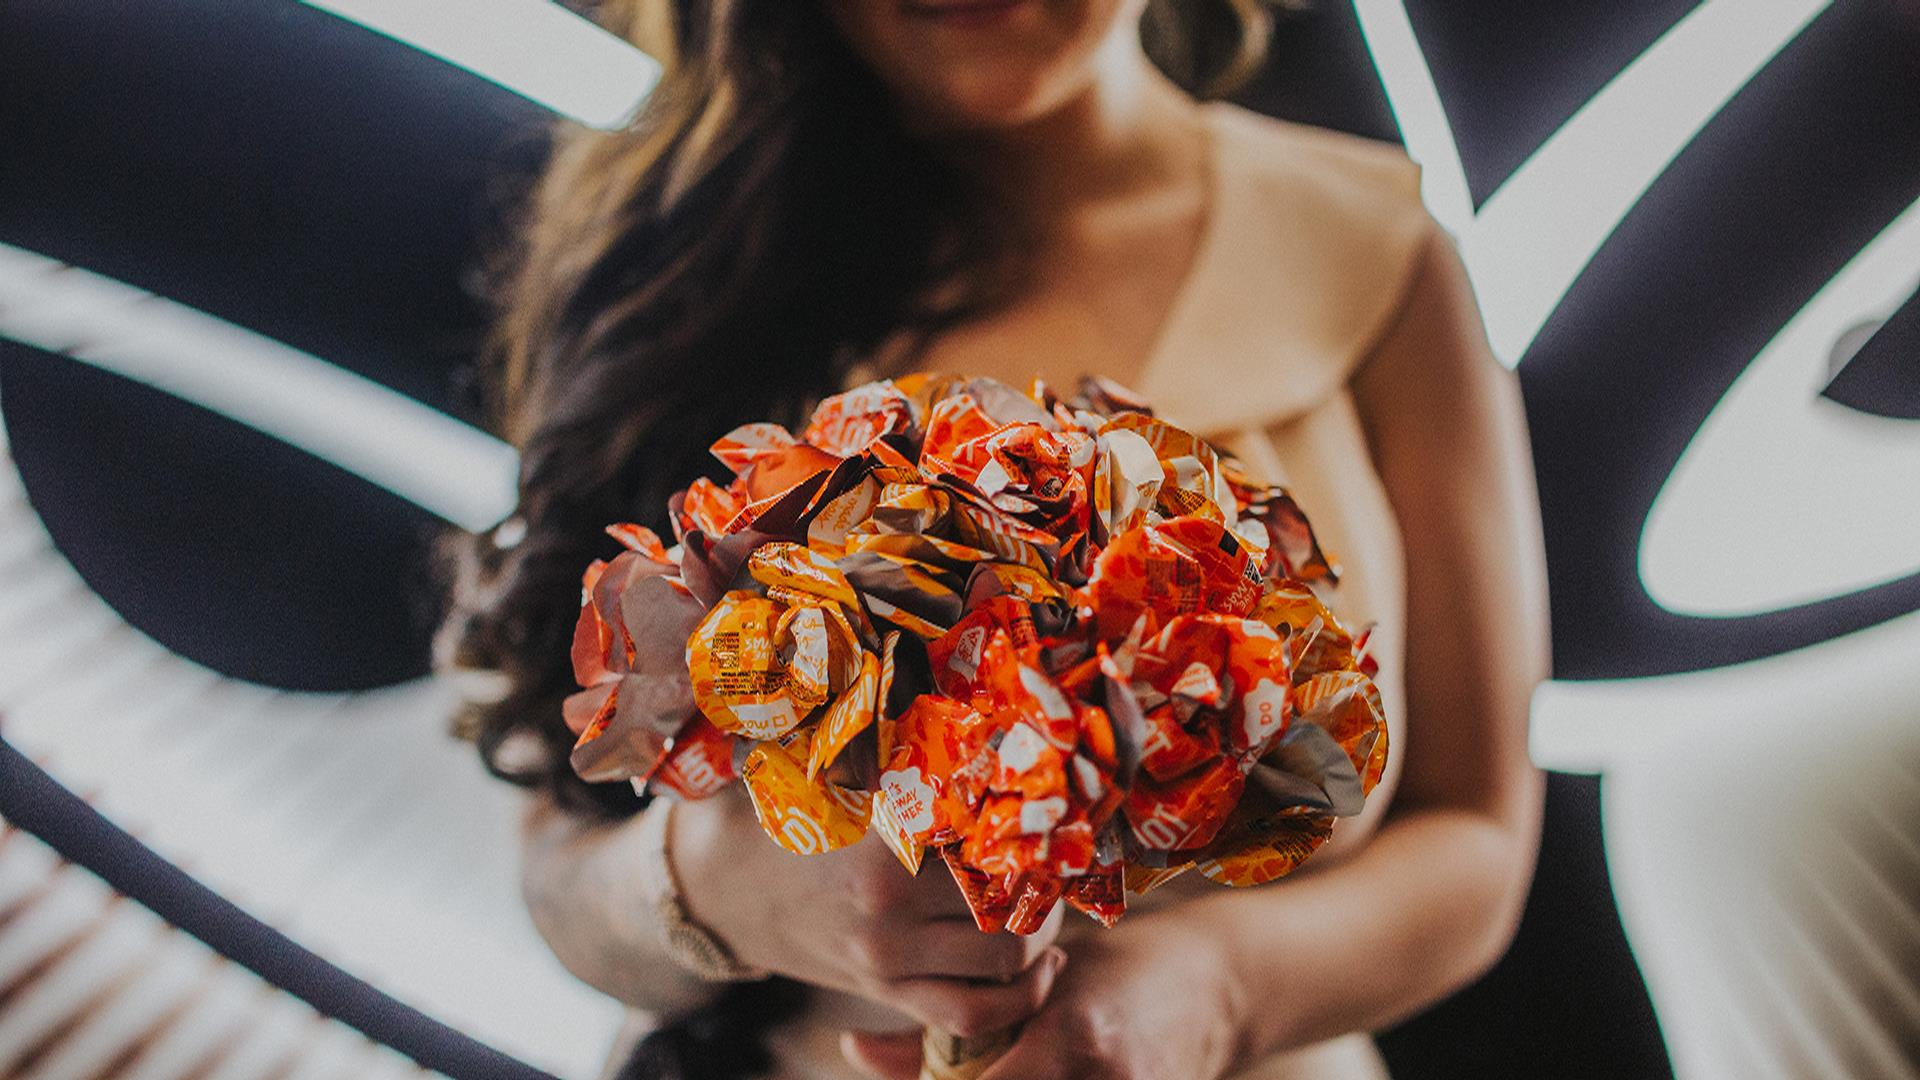 Talk about cheesy! This couple just got married at Taco Bell